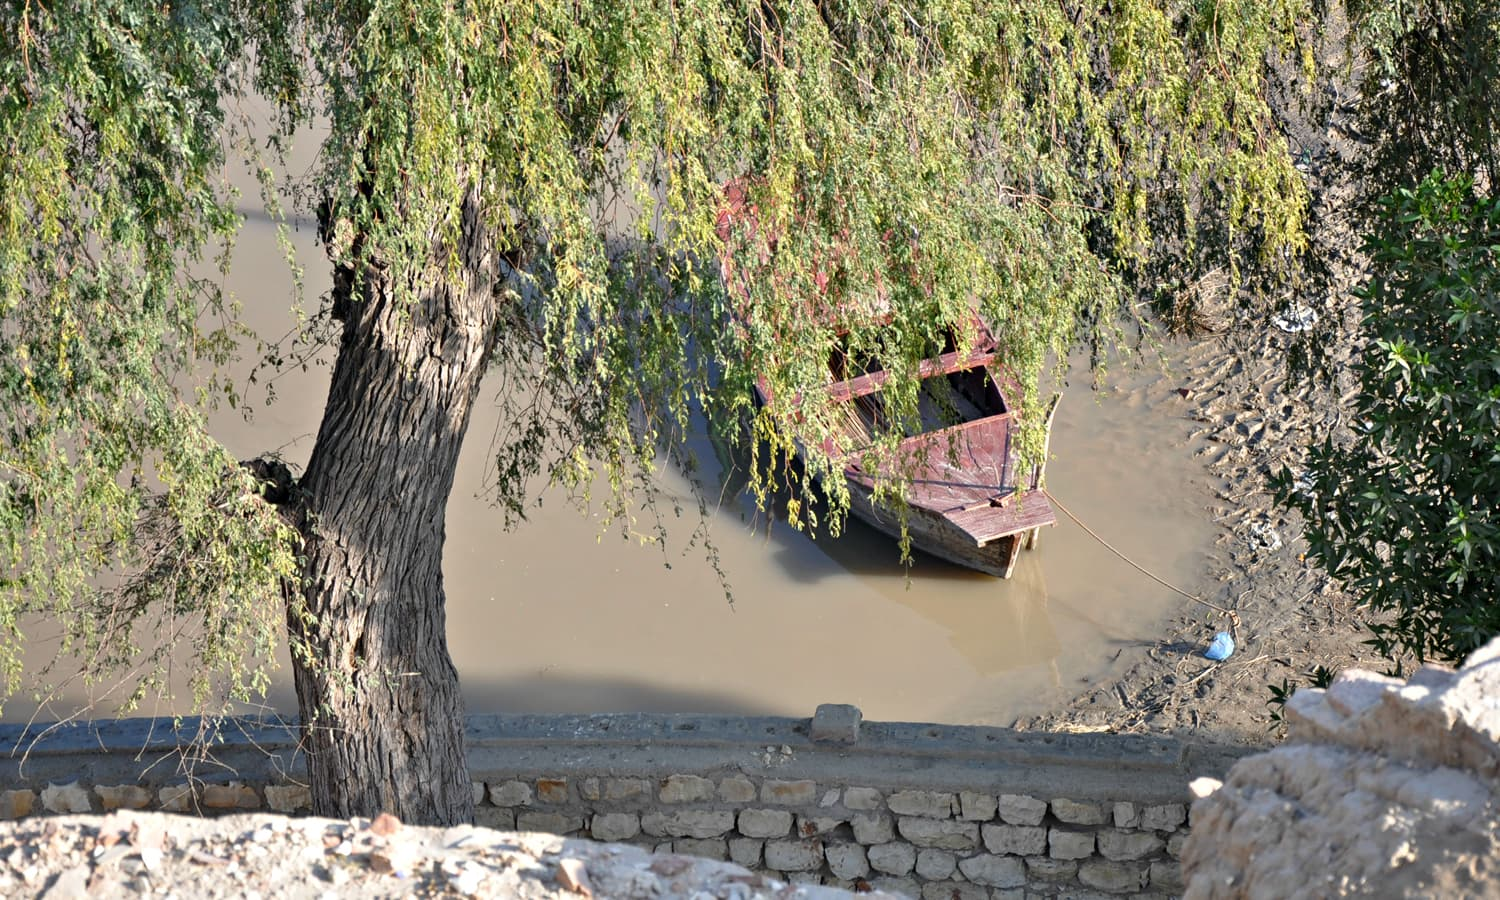 Abode of Seven - A boatman arrives  at rivers bank